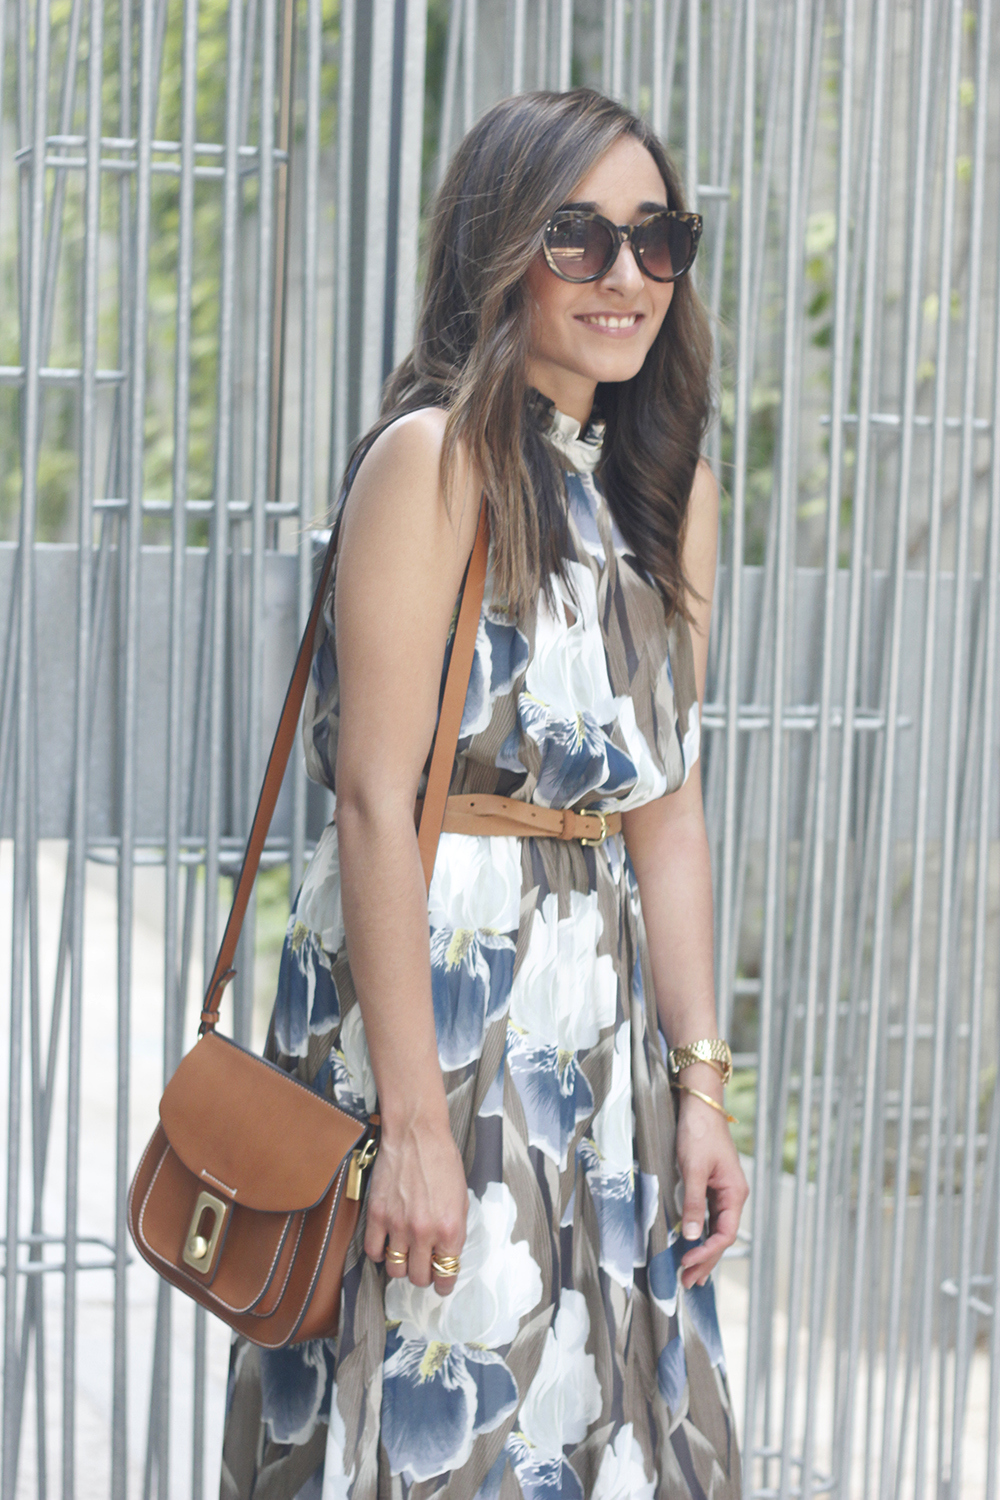 Maxi Dress With Floral Pattern heels summer outfit style07